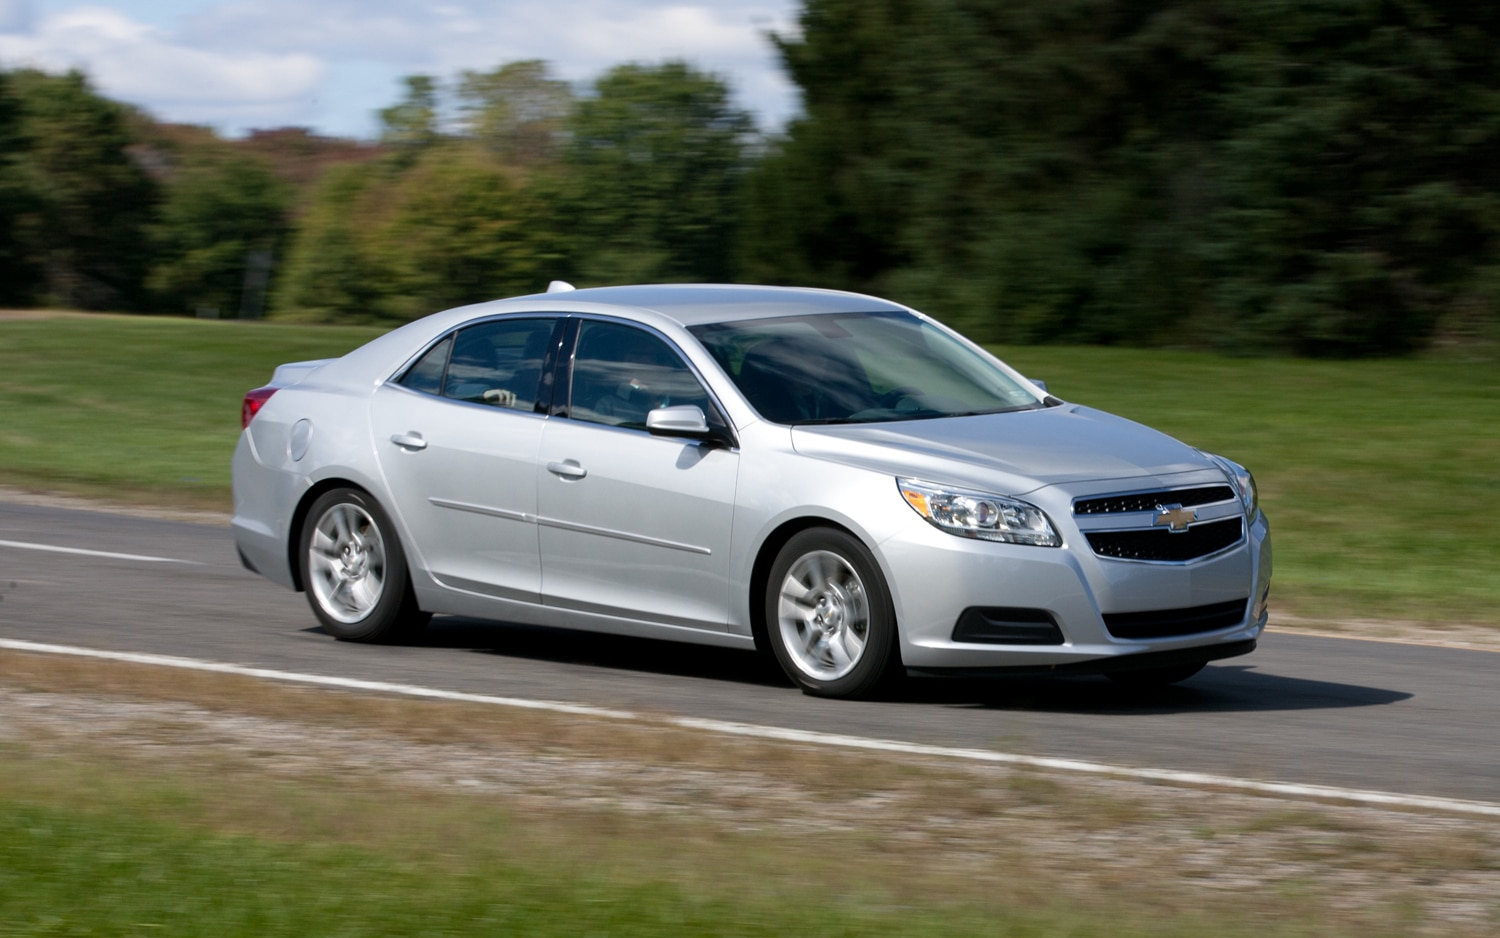 2013 Chevrolet Malibu ECO Front Three Quartes In Motion1